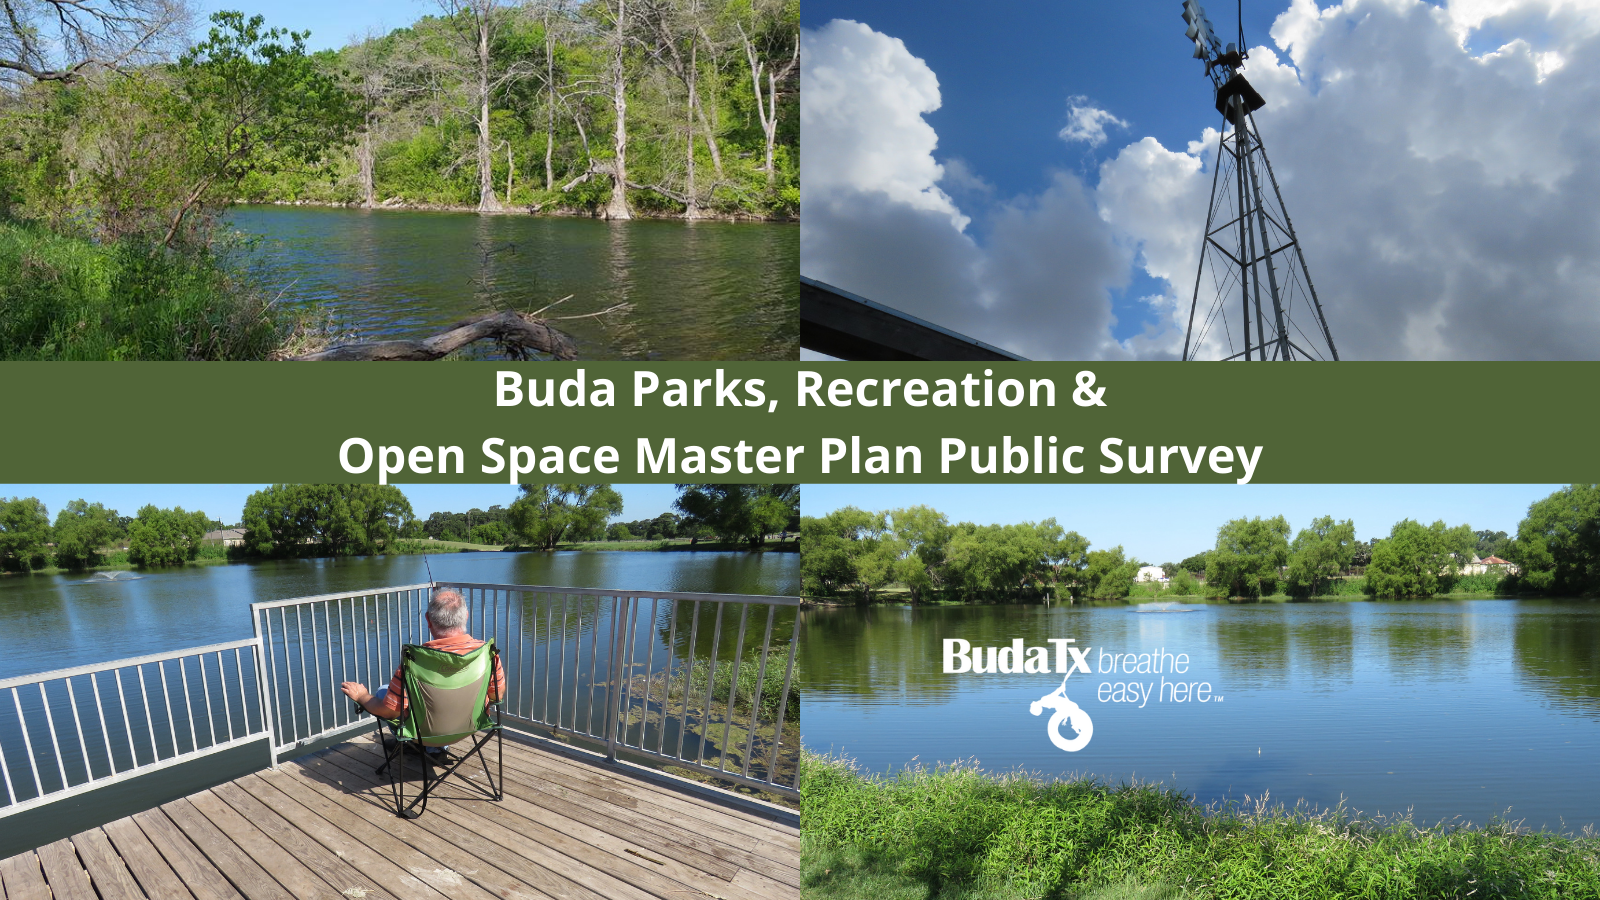 Buda Parks, Recreation and Open Space Master Plan Public Survey